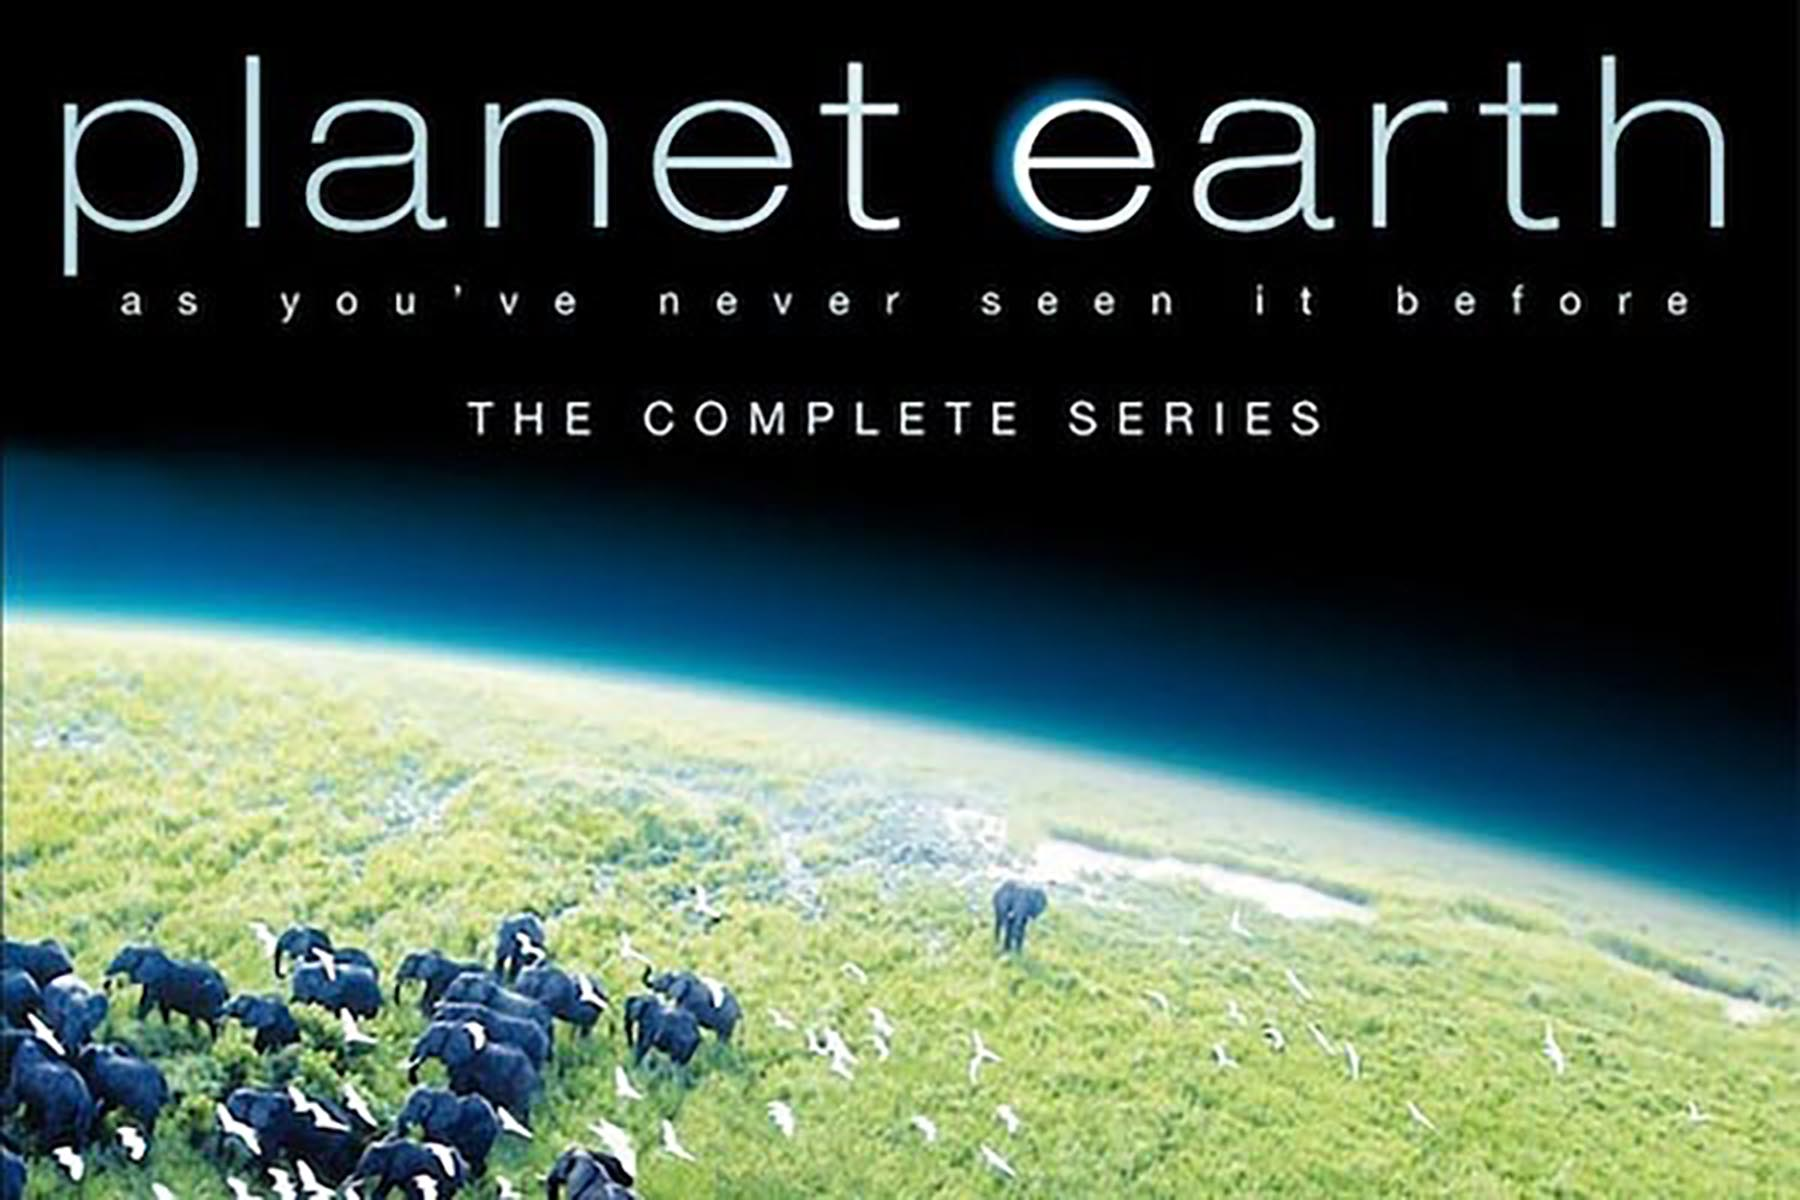 Cover for the TV series, Planet Earth, featuring picture of the earth from space.